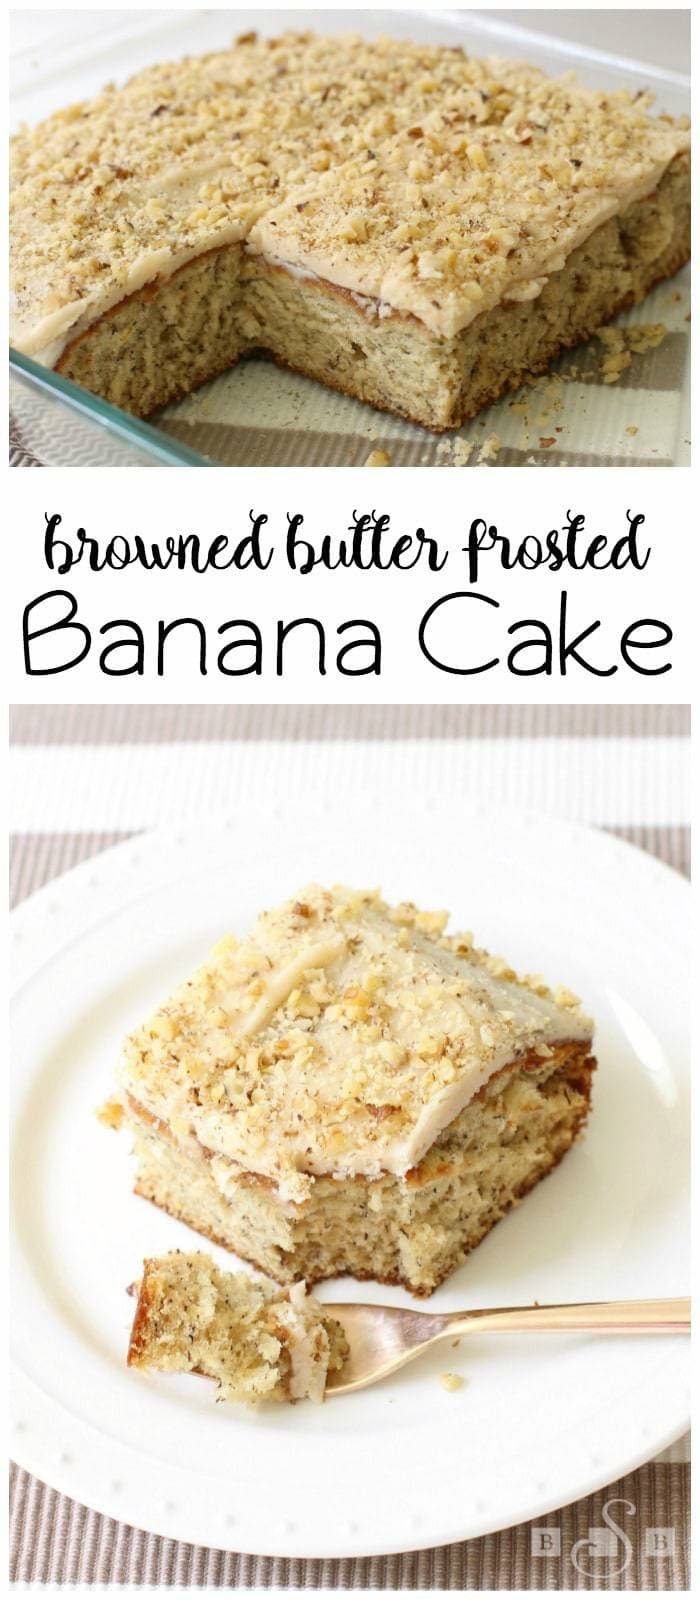 Frosted Banana Cake made from scratch in no time! Lovely banana flavor combined with rich, buttery frosting and topped with chopped nuts. Delicious moist banana cake recipe!